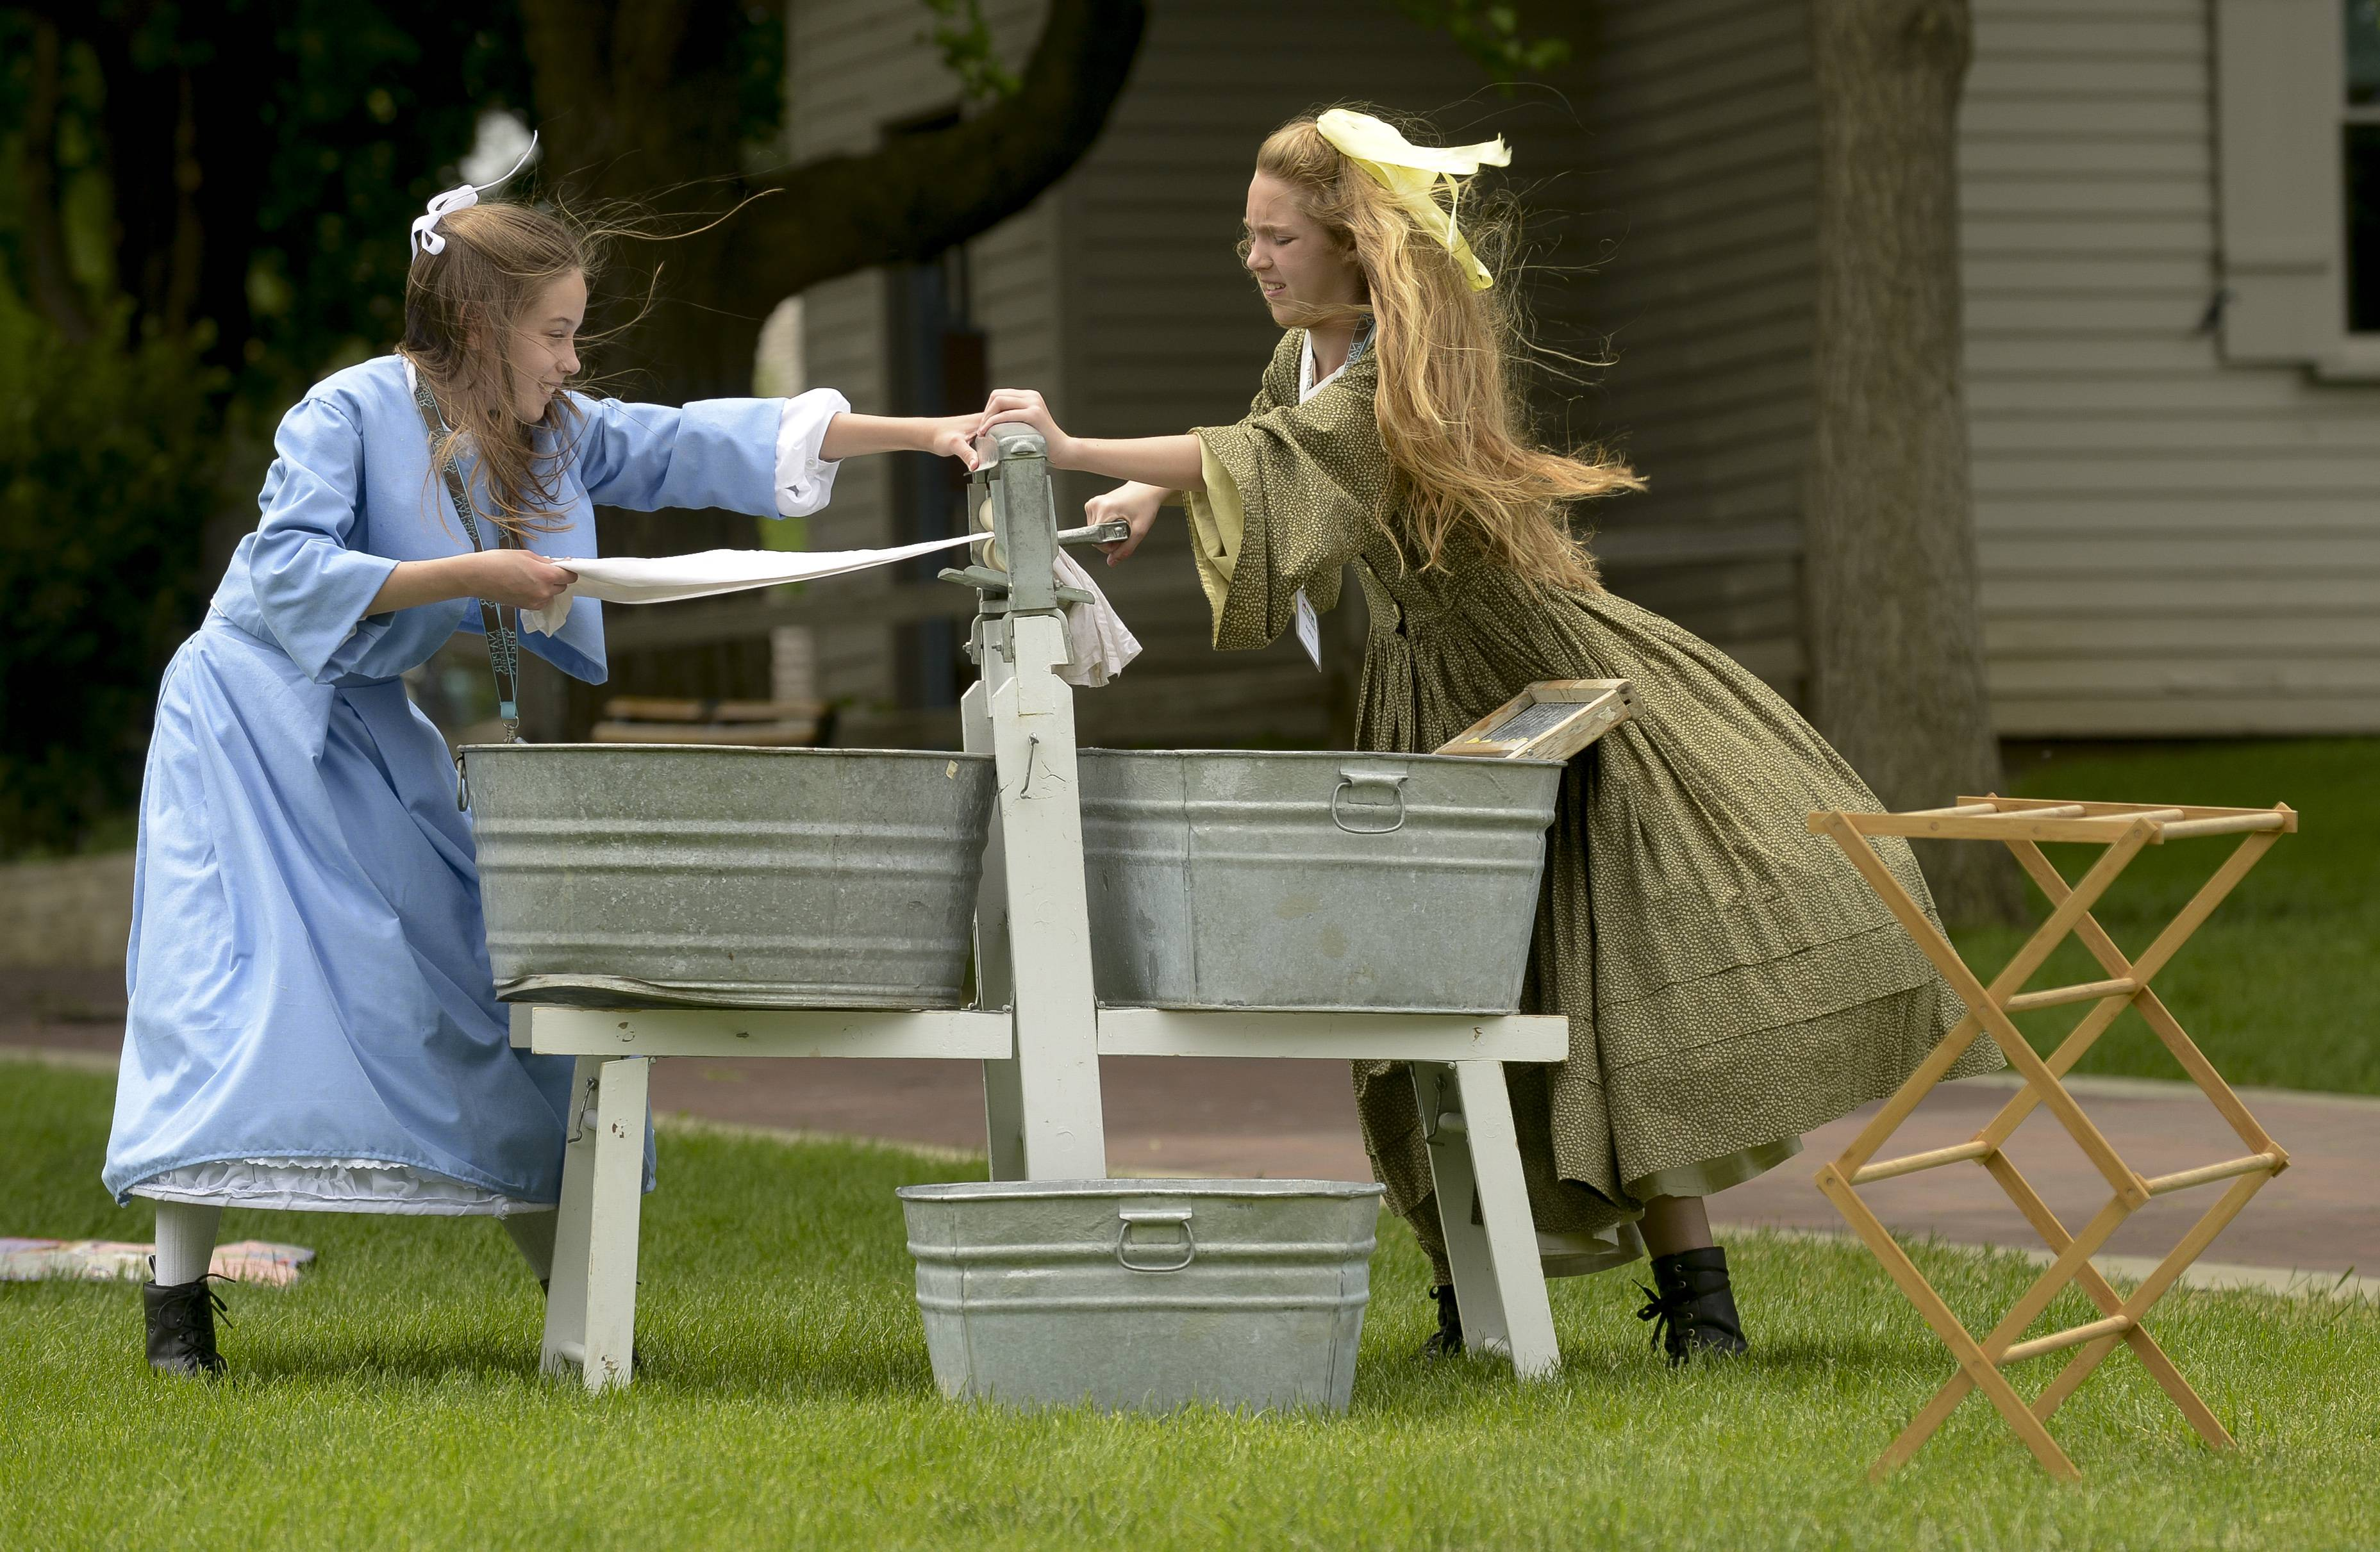 Caroline Schwinn and Julia Boffa, both 12, of Naperville, demonstrate how to wash clothing with a washboard and hand cranked wringer, as the Naper Settlement kicks off Settlement Sundays.